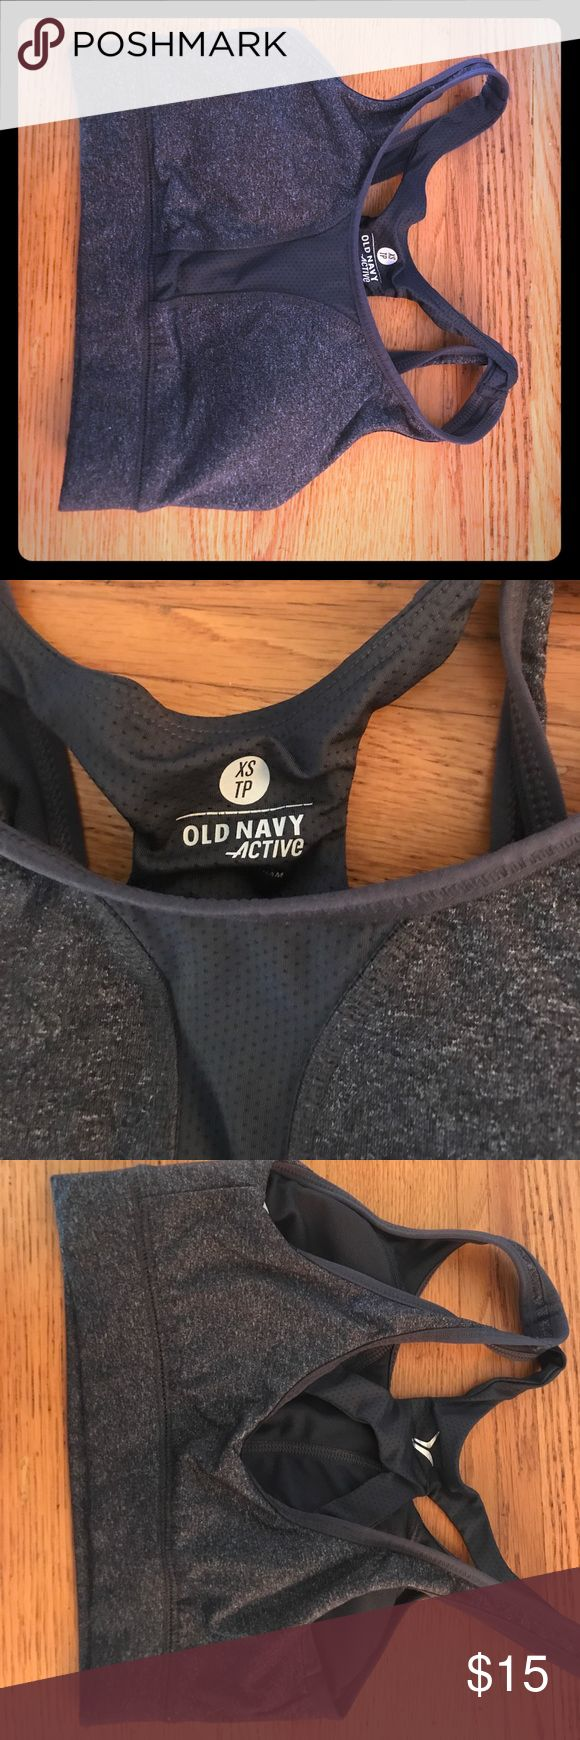 Old Navy Sports Bra Xs old navy sports bra. Great condition! Old Navy Intimates & Sleepwear Bras